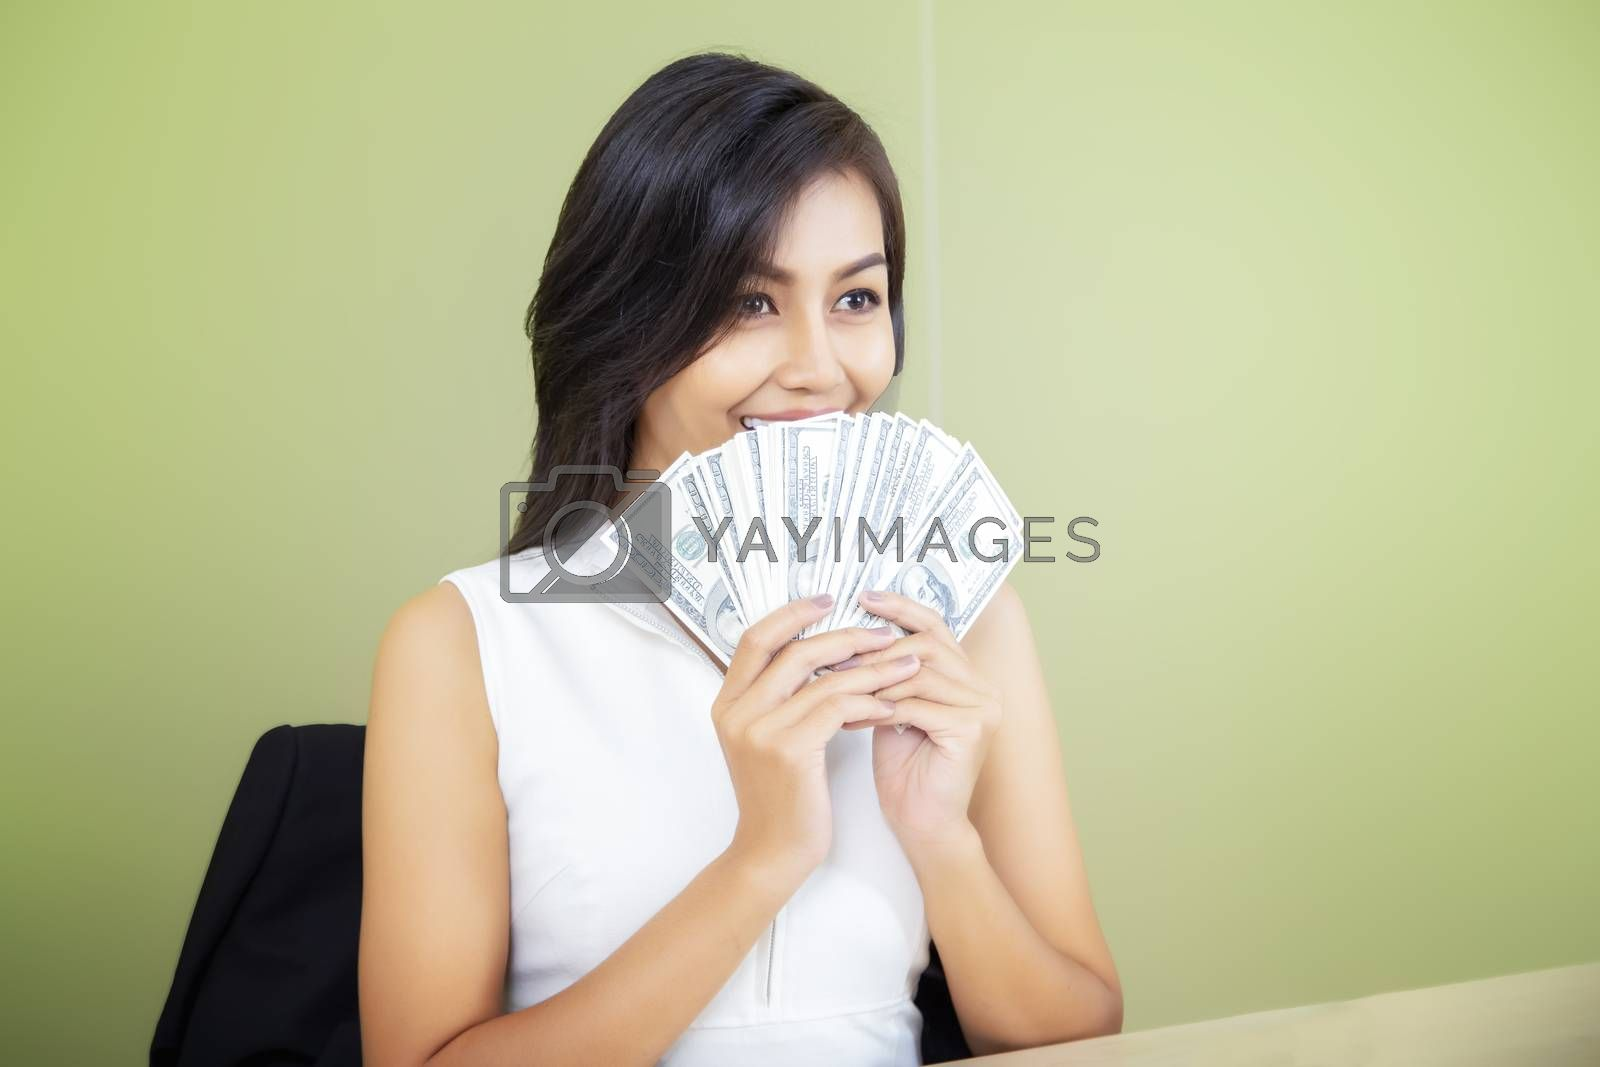 Cheerful attractive young smiling woman with dollars in hand And dreaming happily